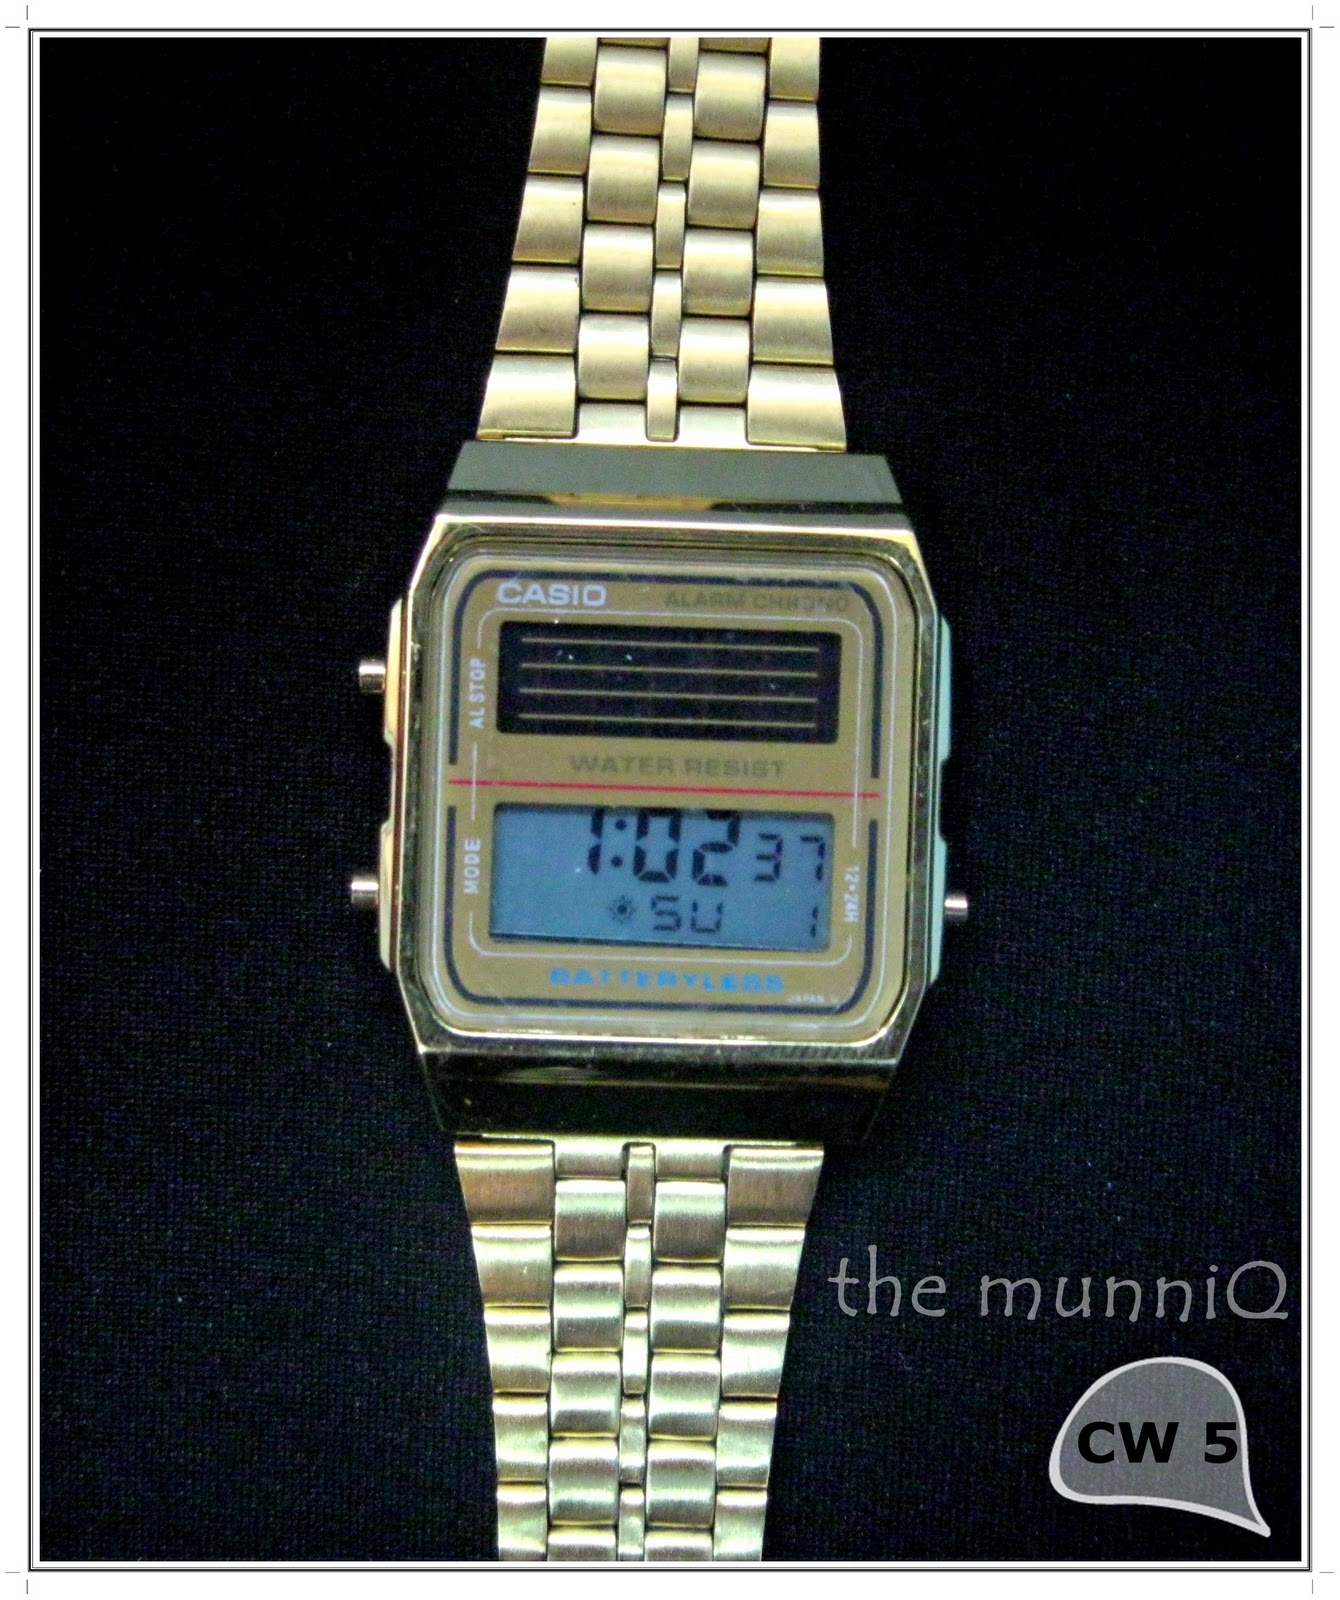 the munniq  vintage classic casio watches